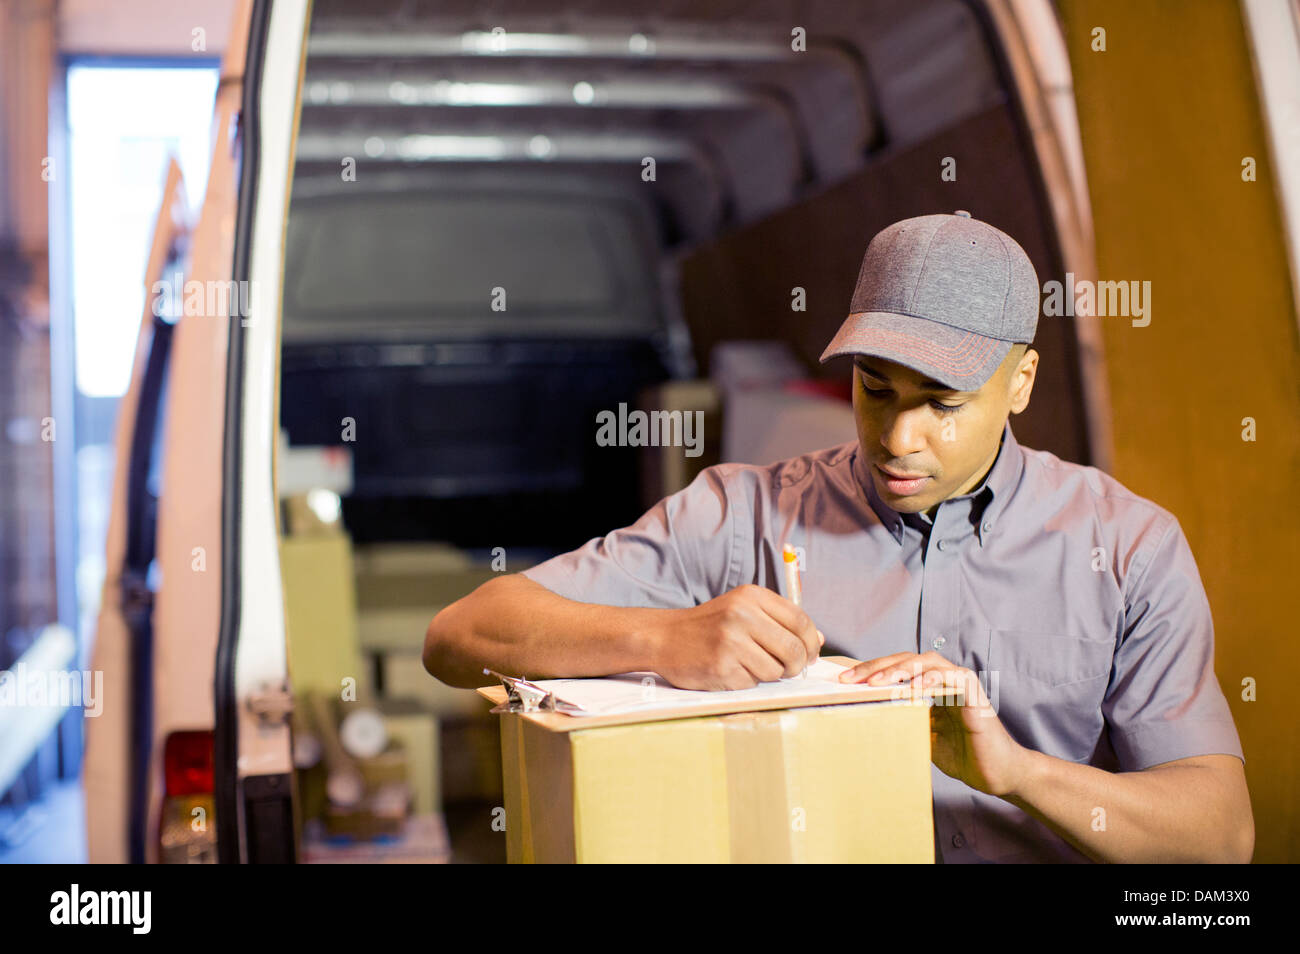 Delivery boy writing on clipboard in van - Stock Image